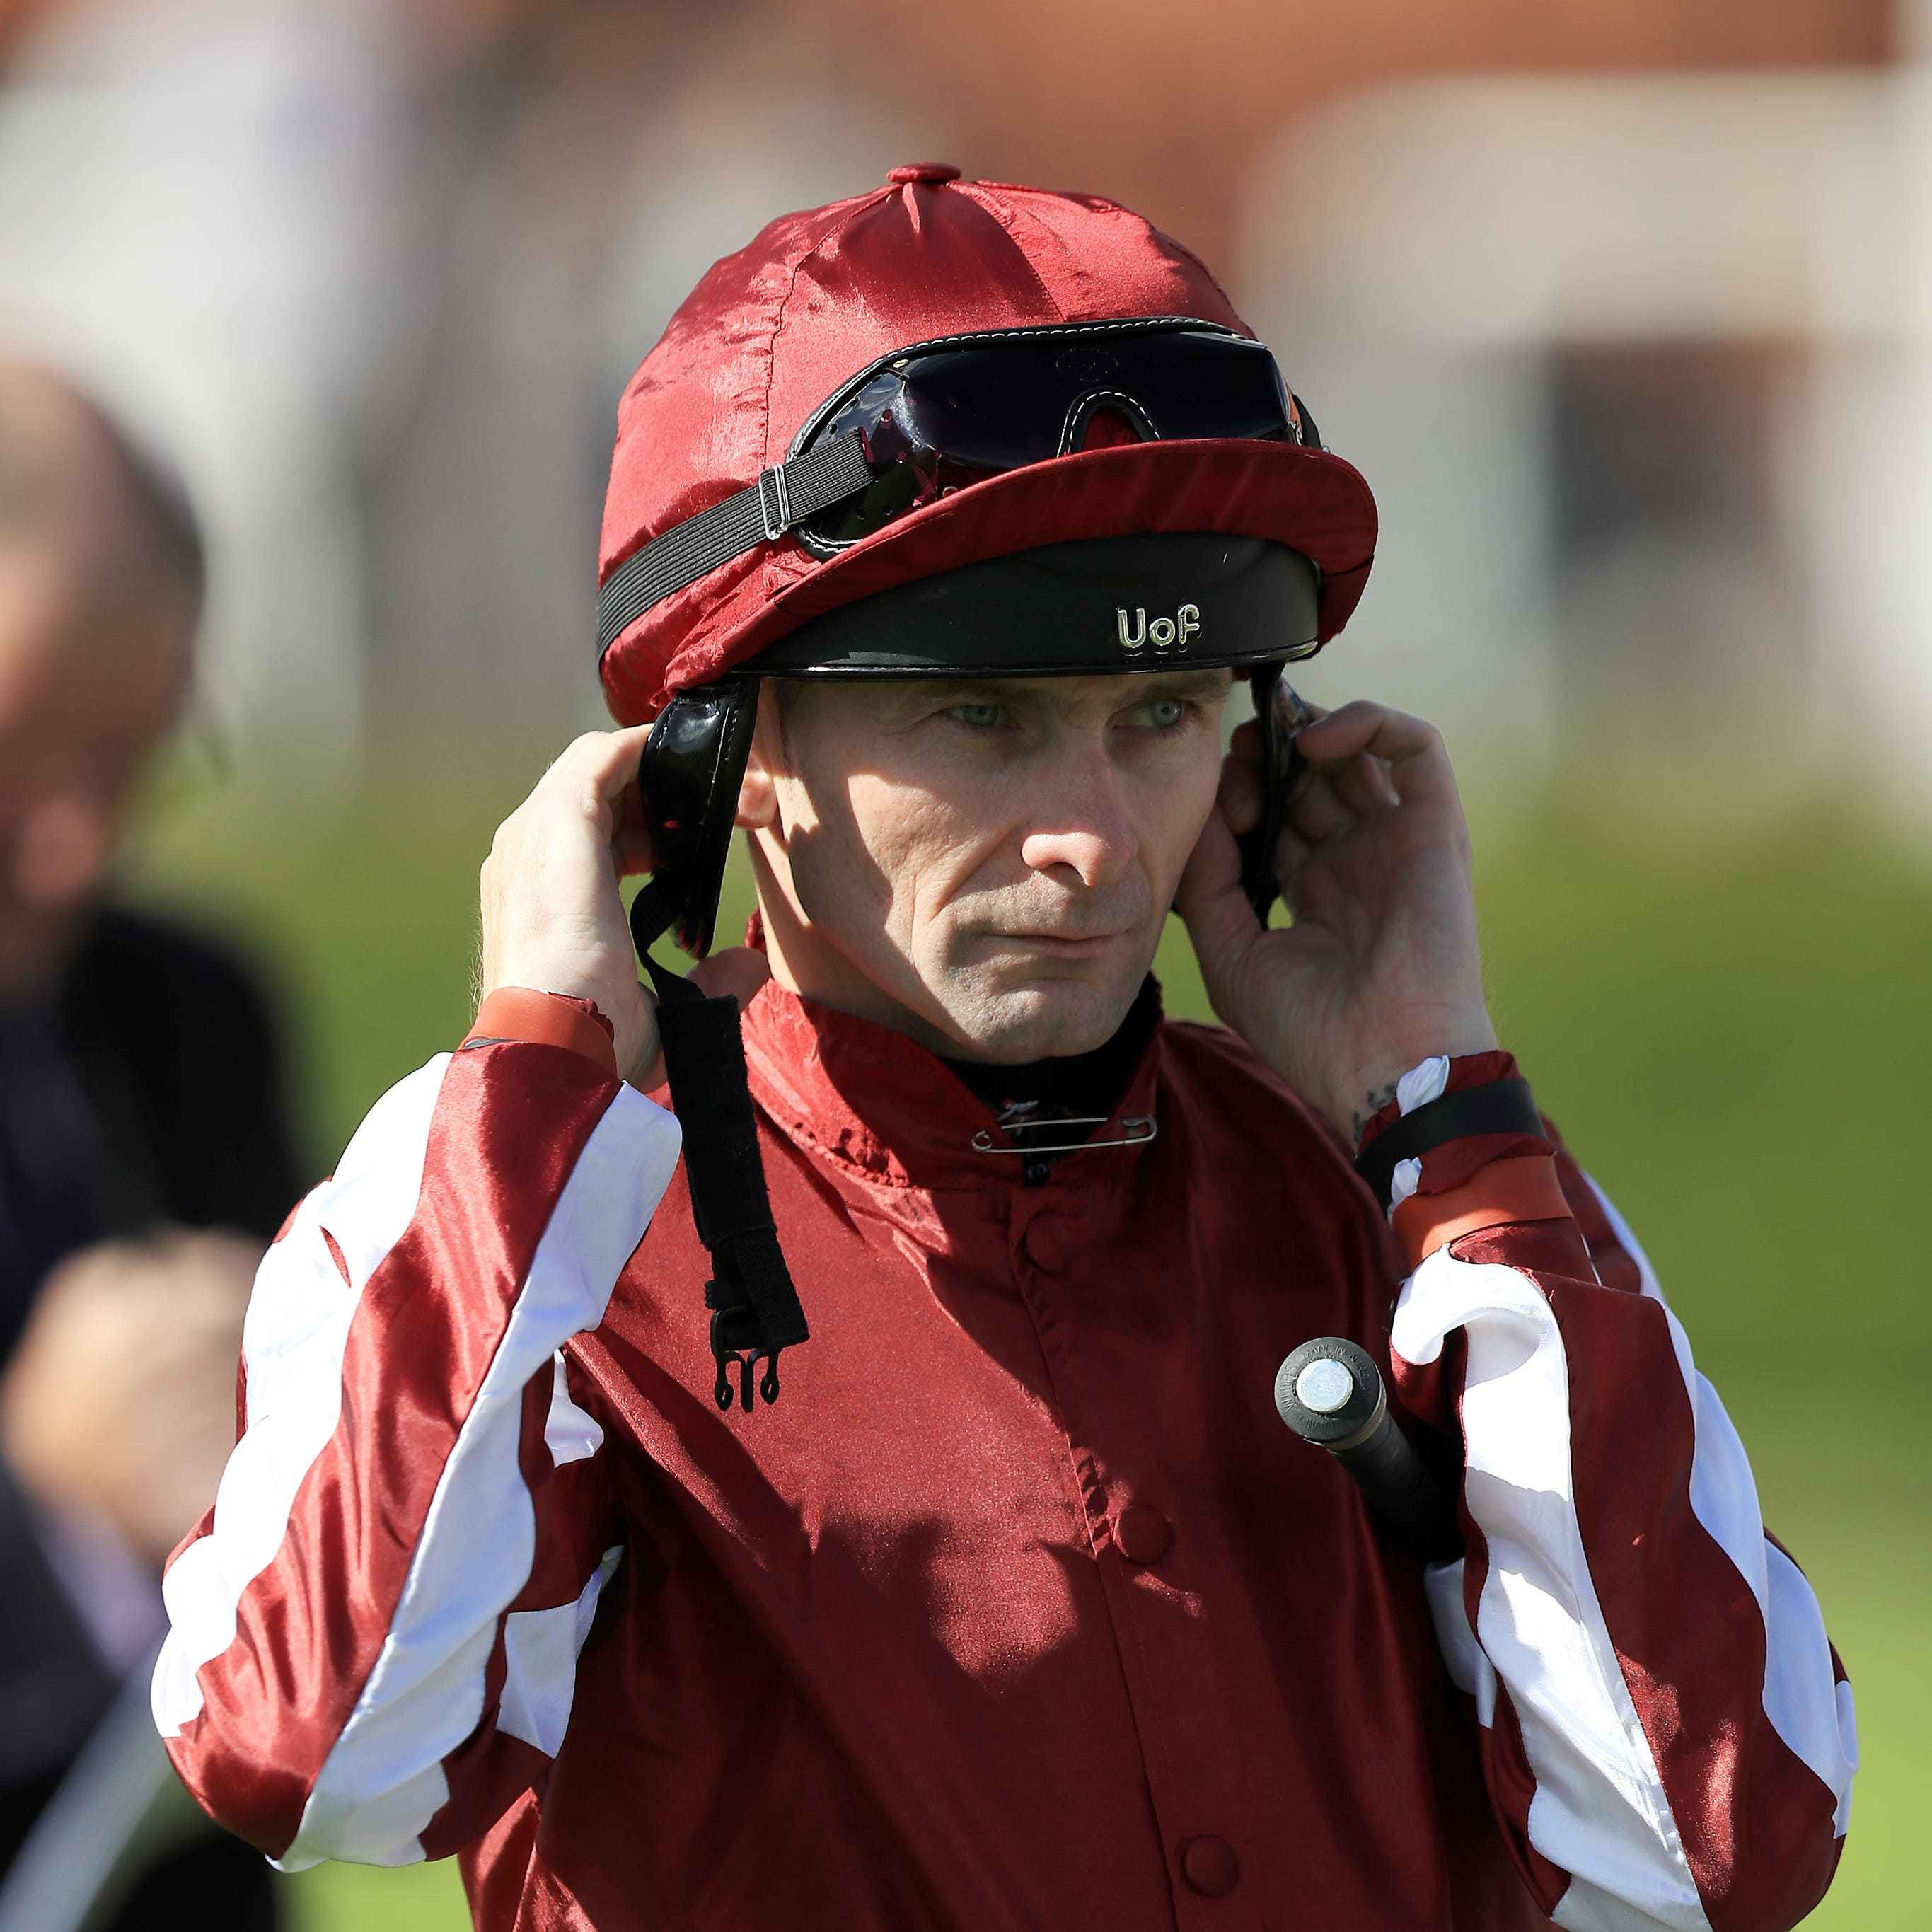 Robert Havlin hopes to be back for the start of the Flat season after breaking his collarbone and rib (